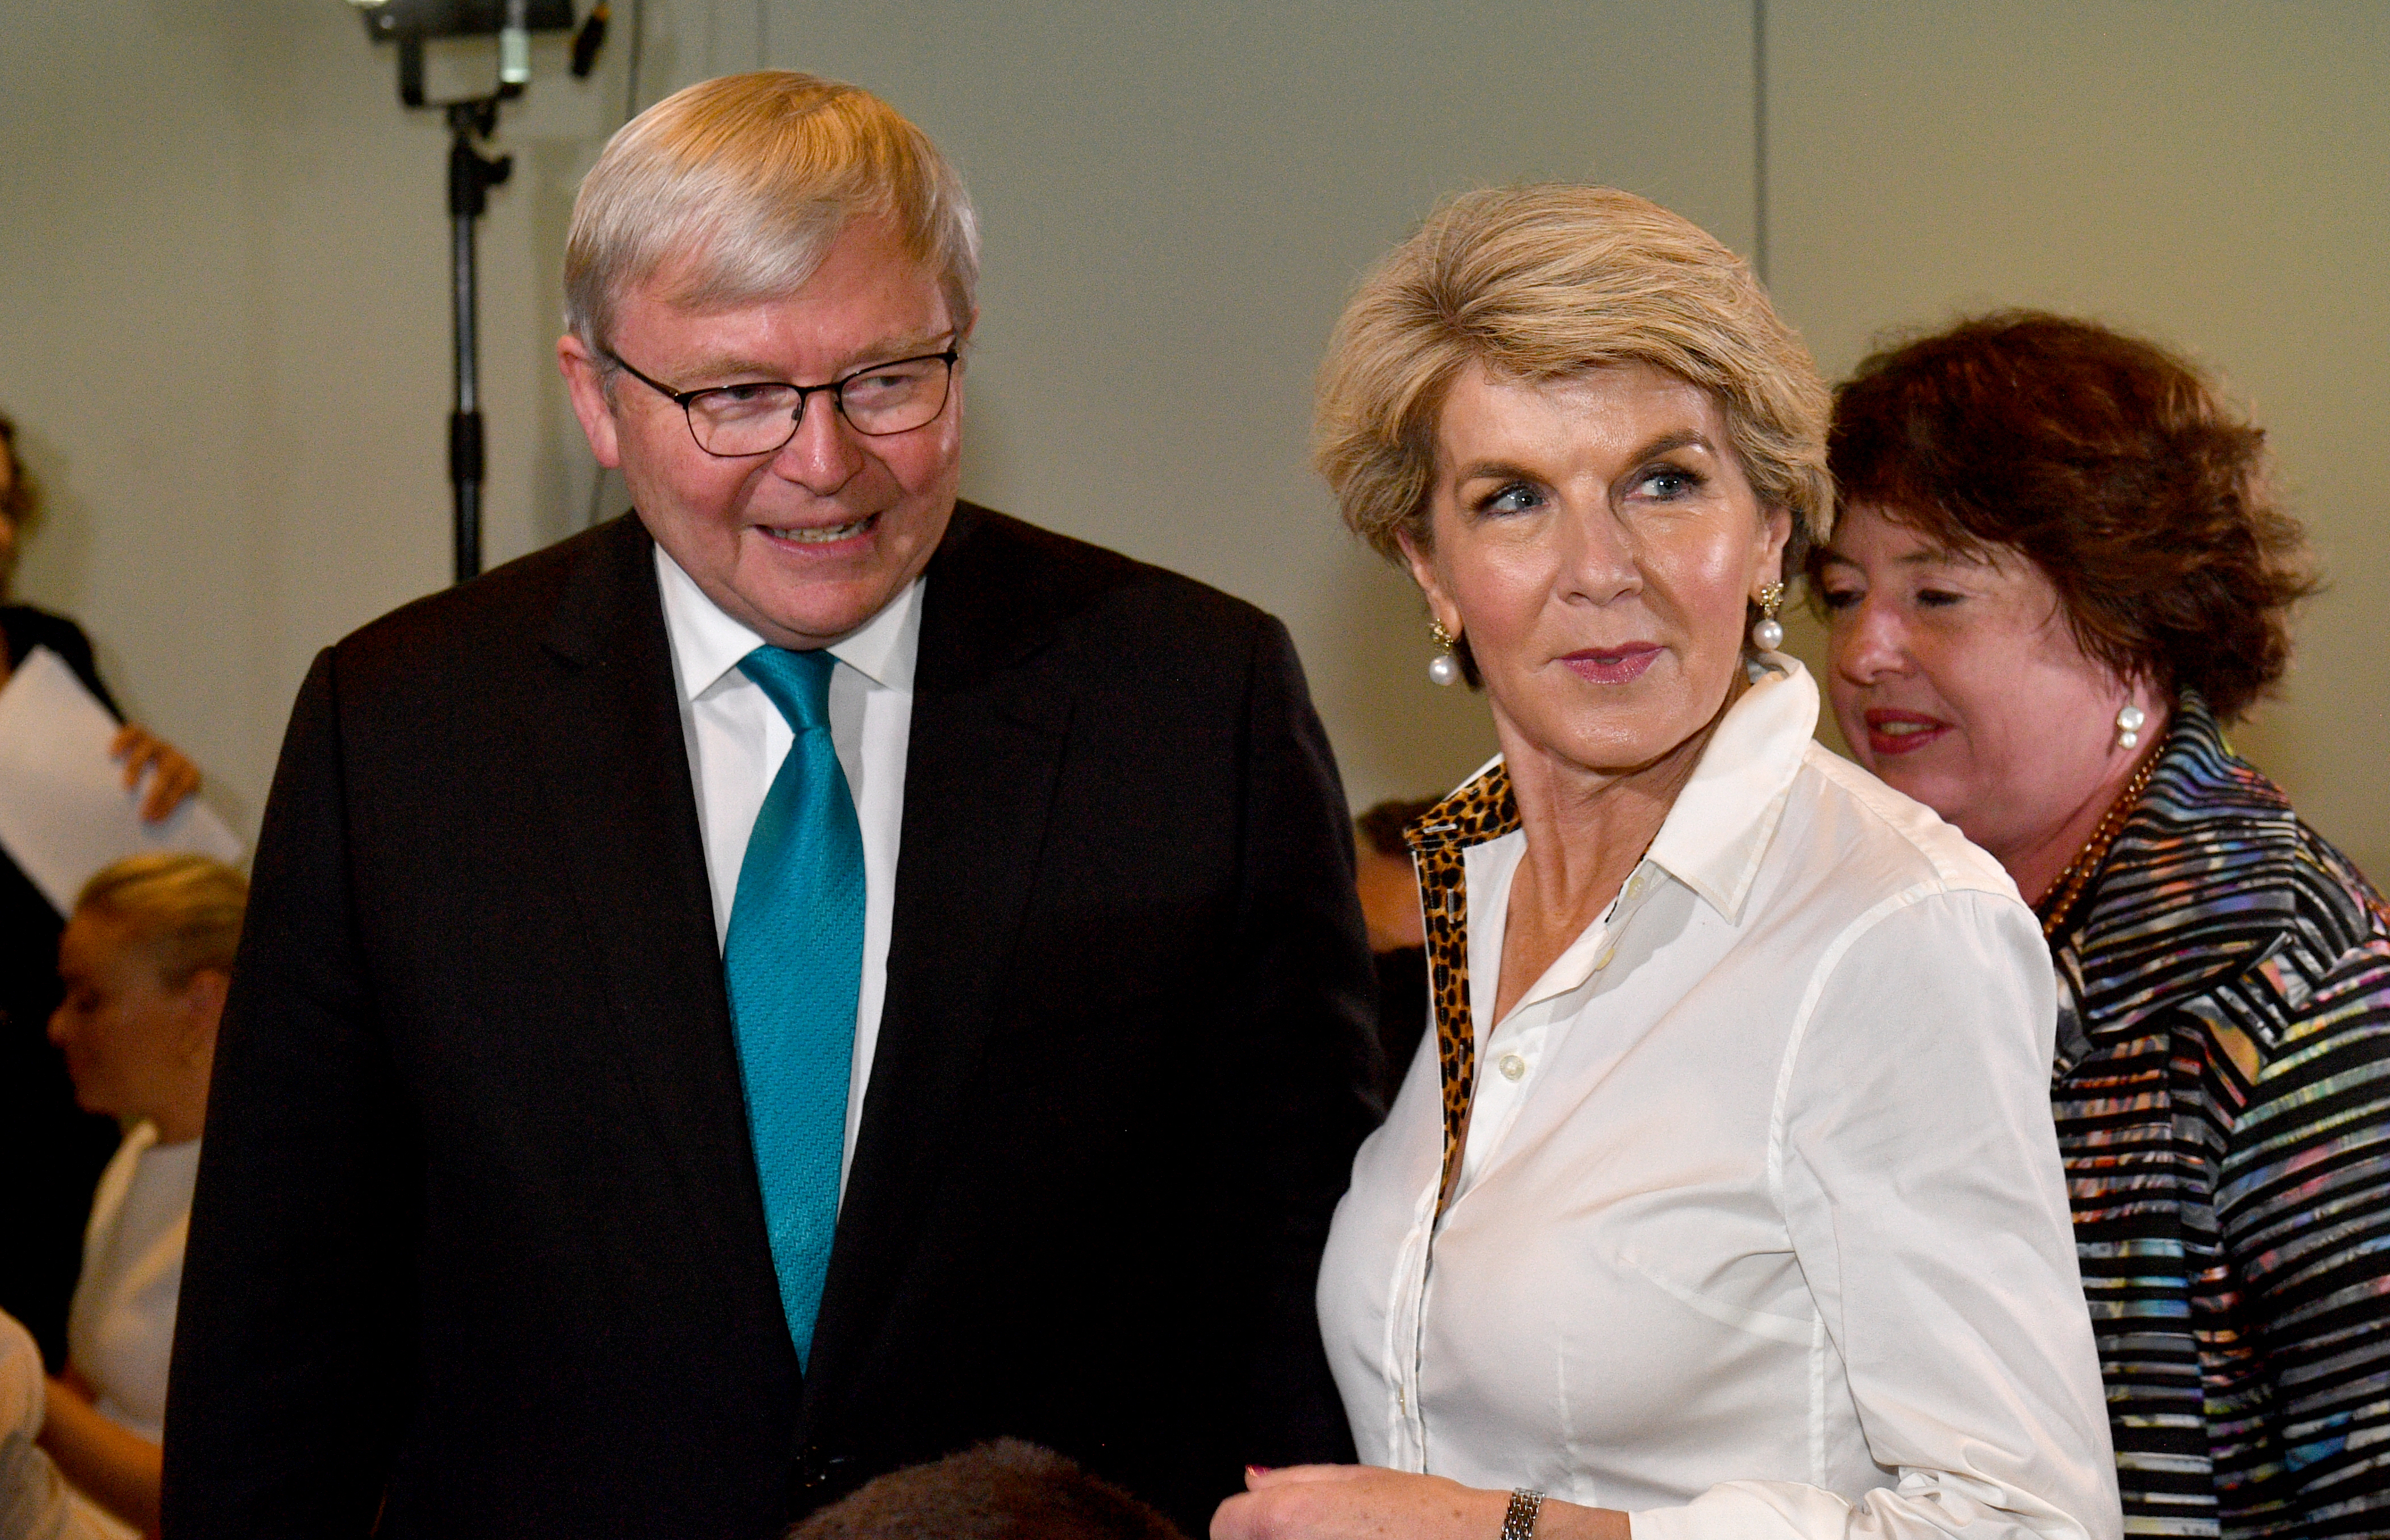 Bishop brushes off claims she breached rules over Jimmy Choos